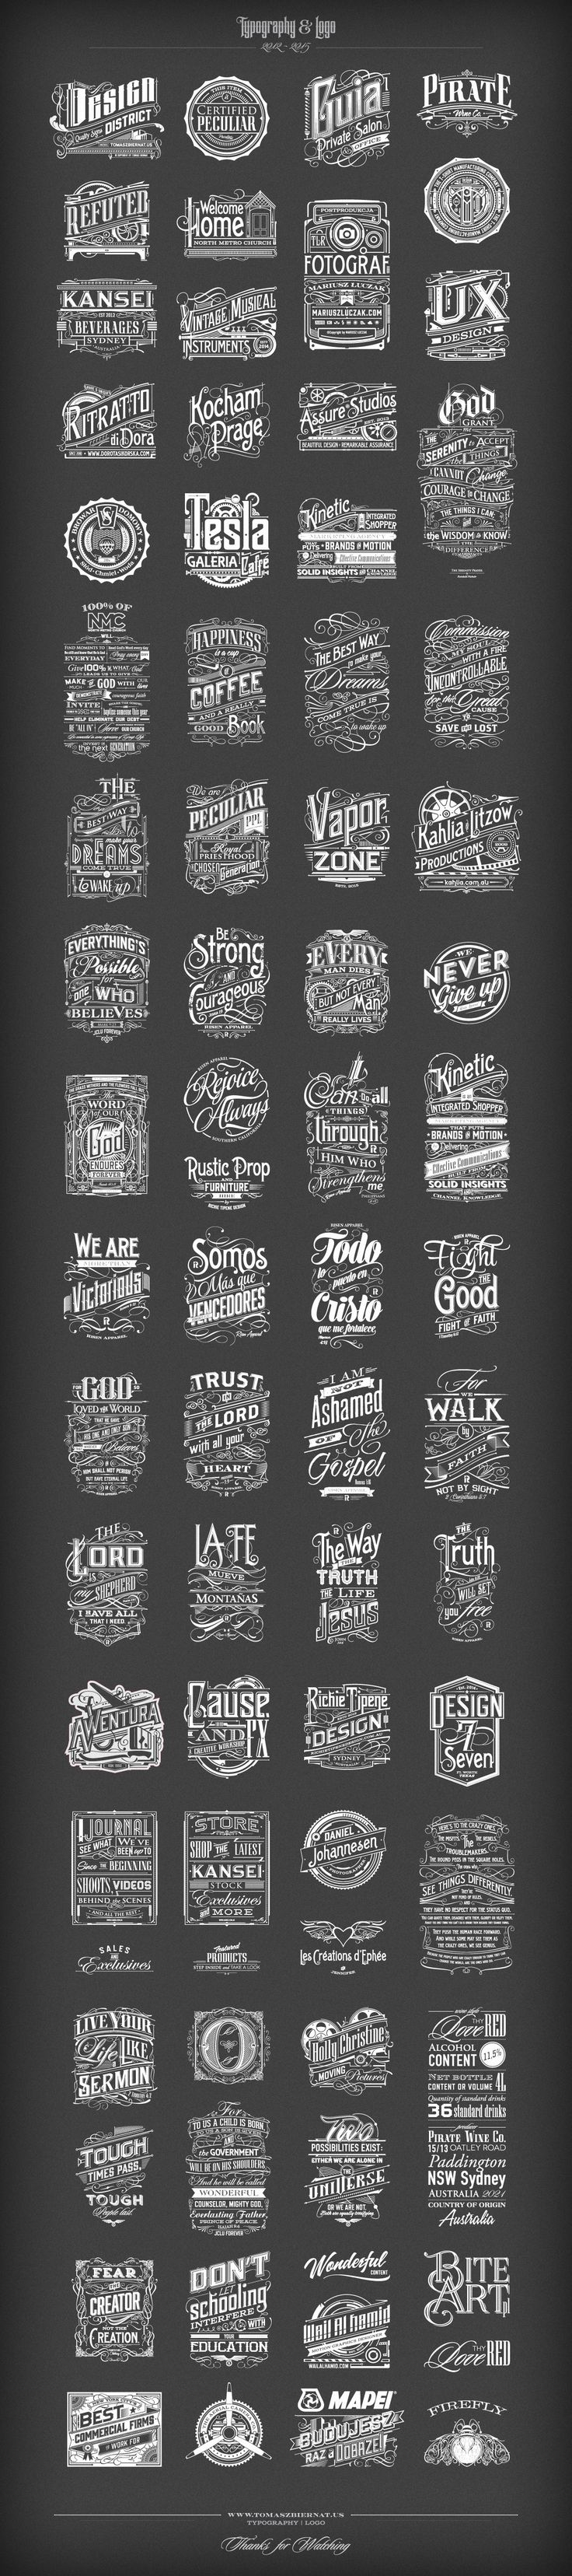 typography and logos - type inspiration